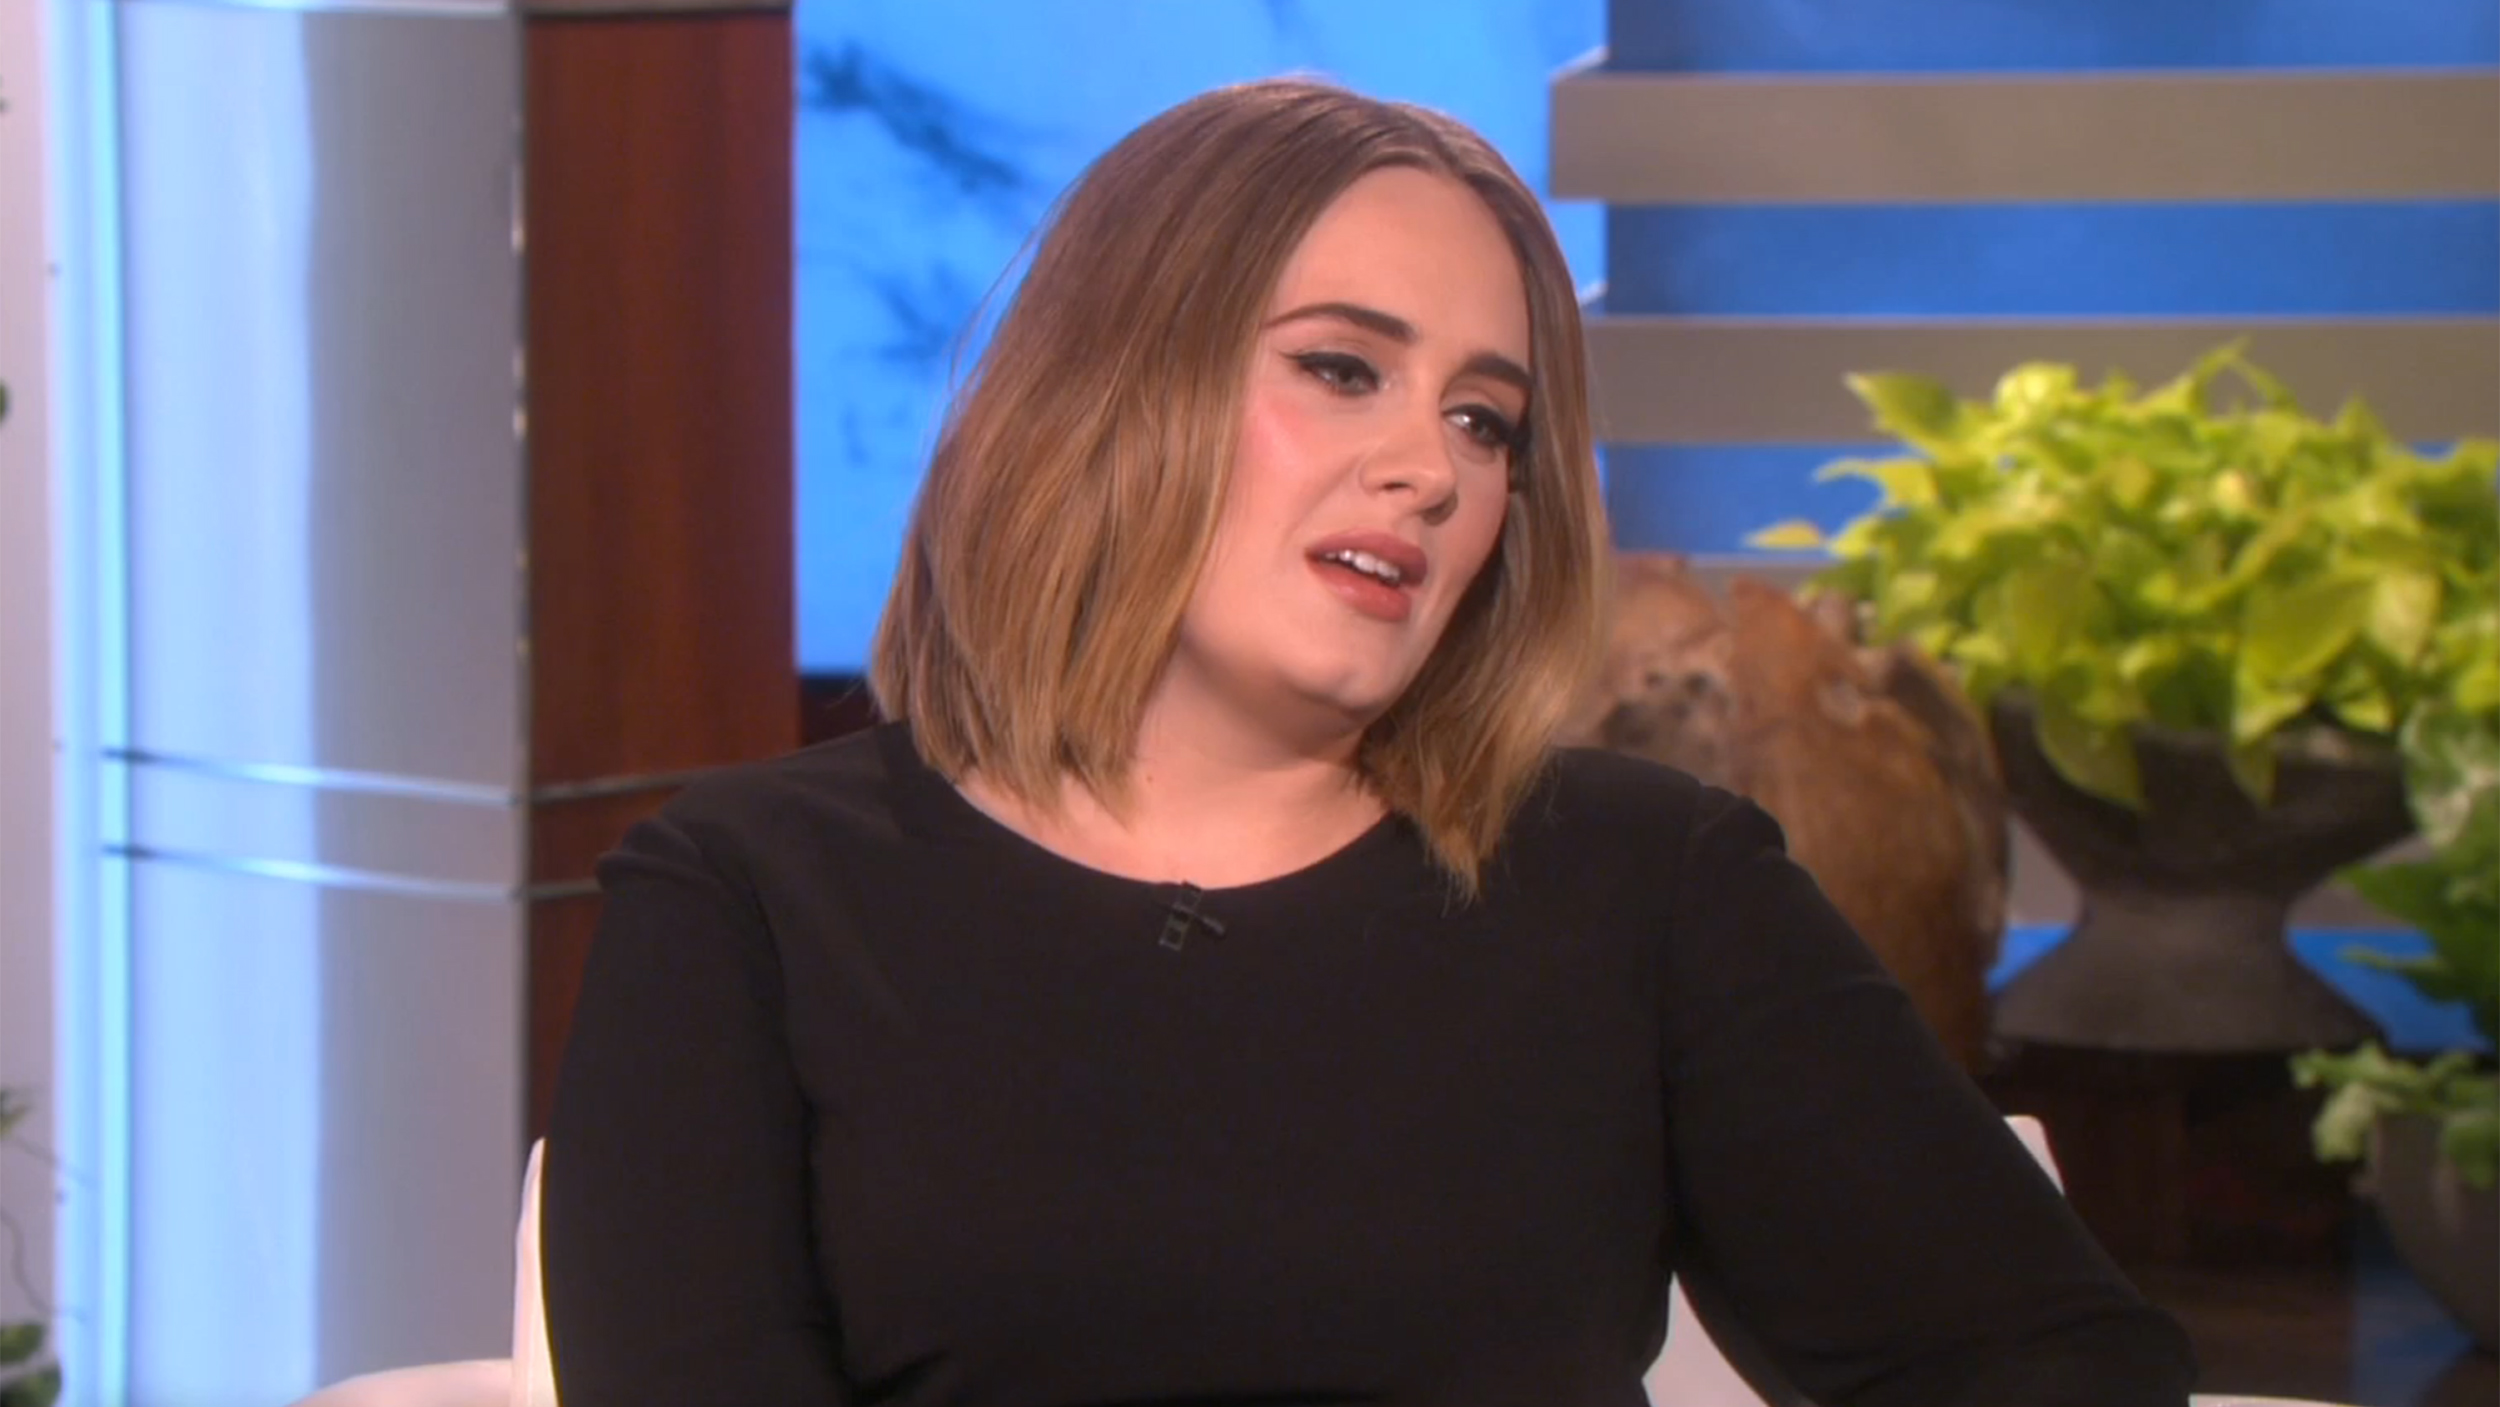 Adele 'cried Pretty Much All Day' After Grammys Audio